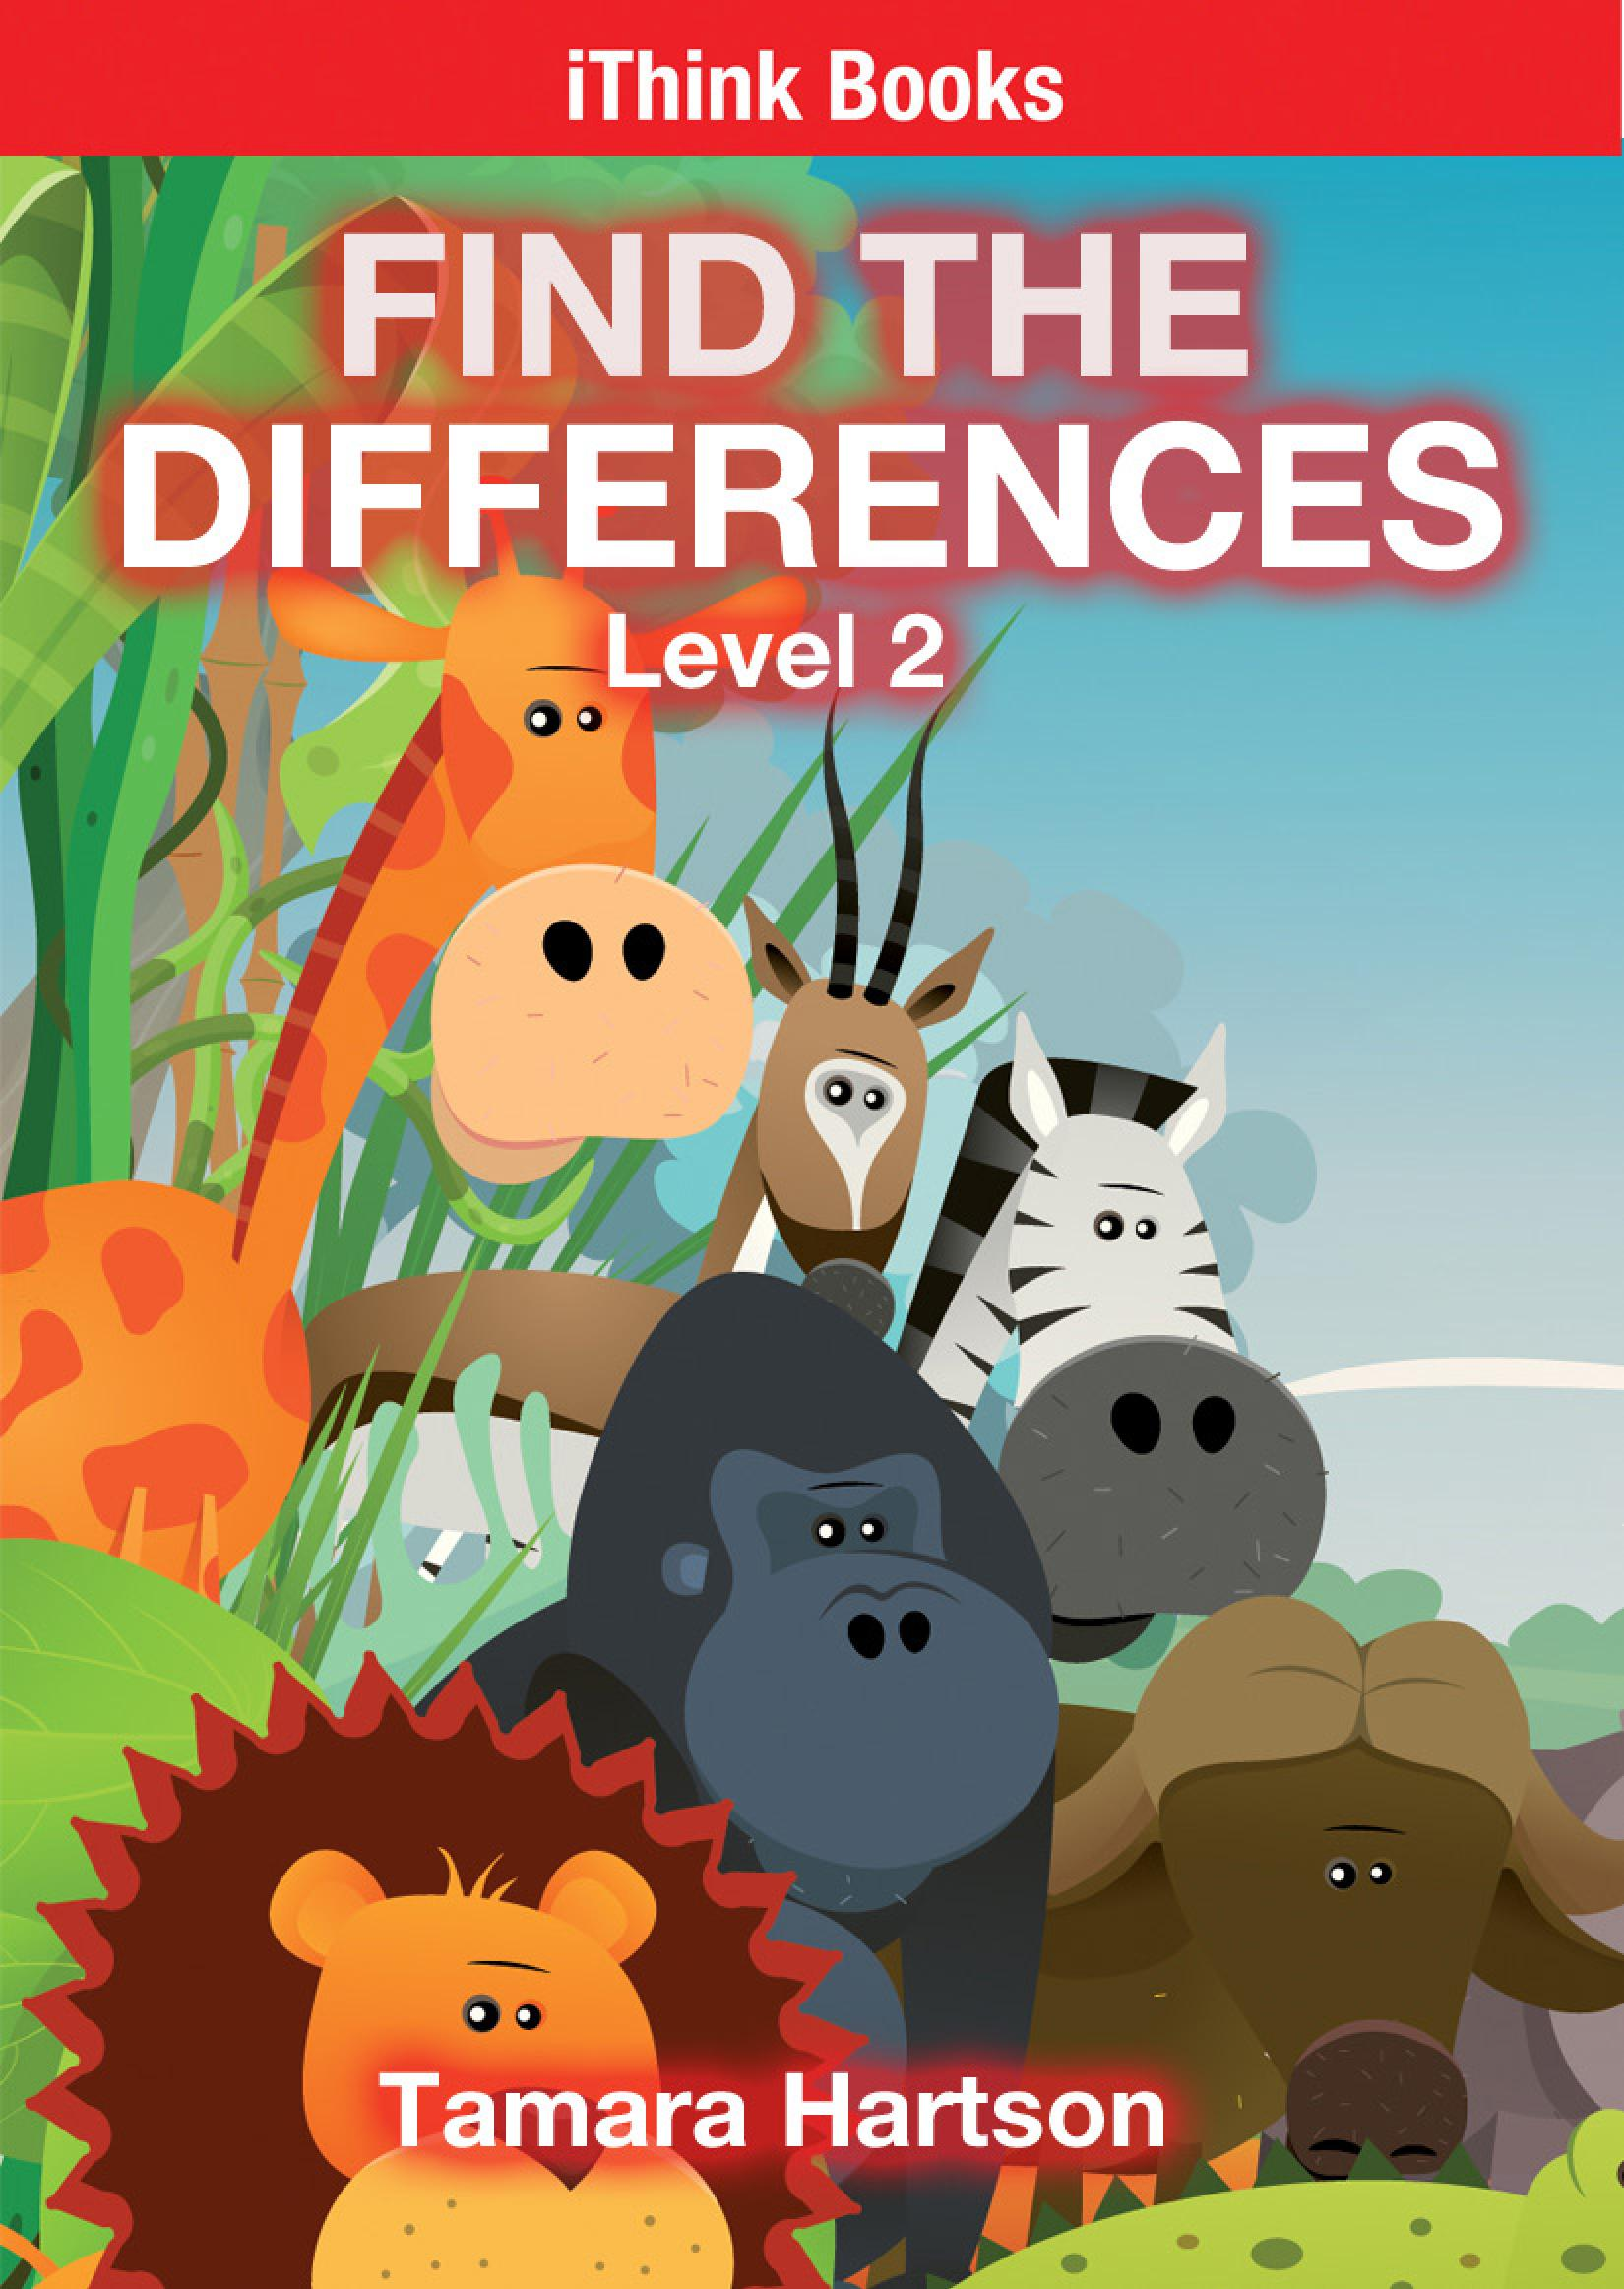 Find the Differences Level 2